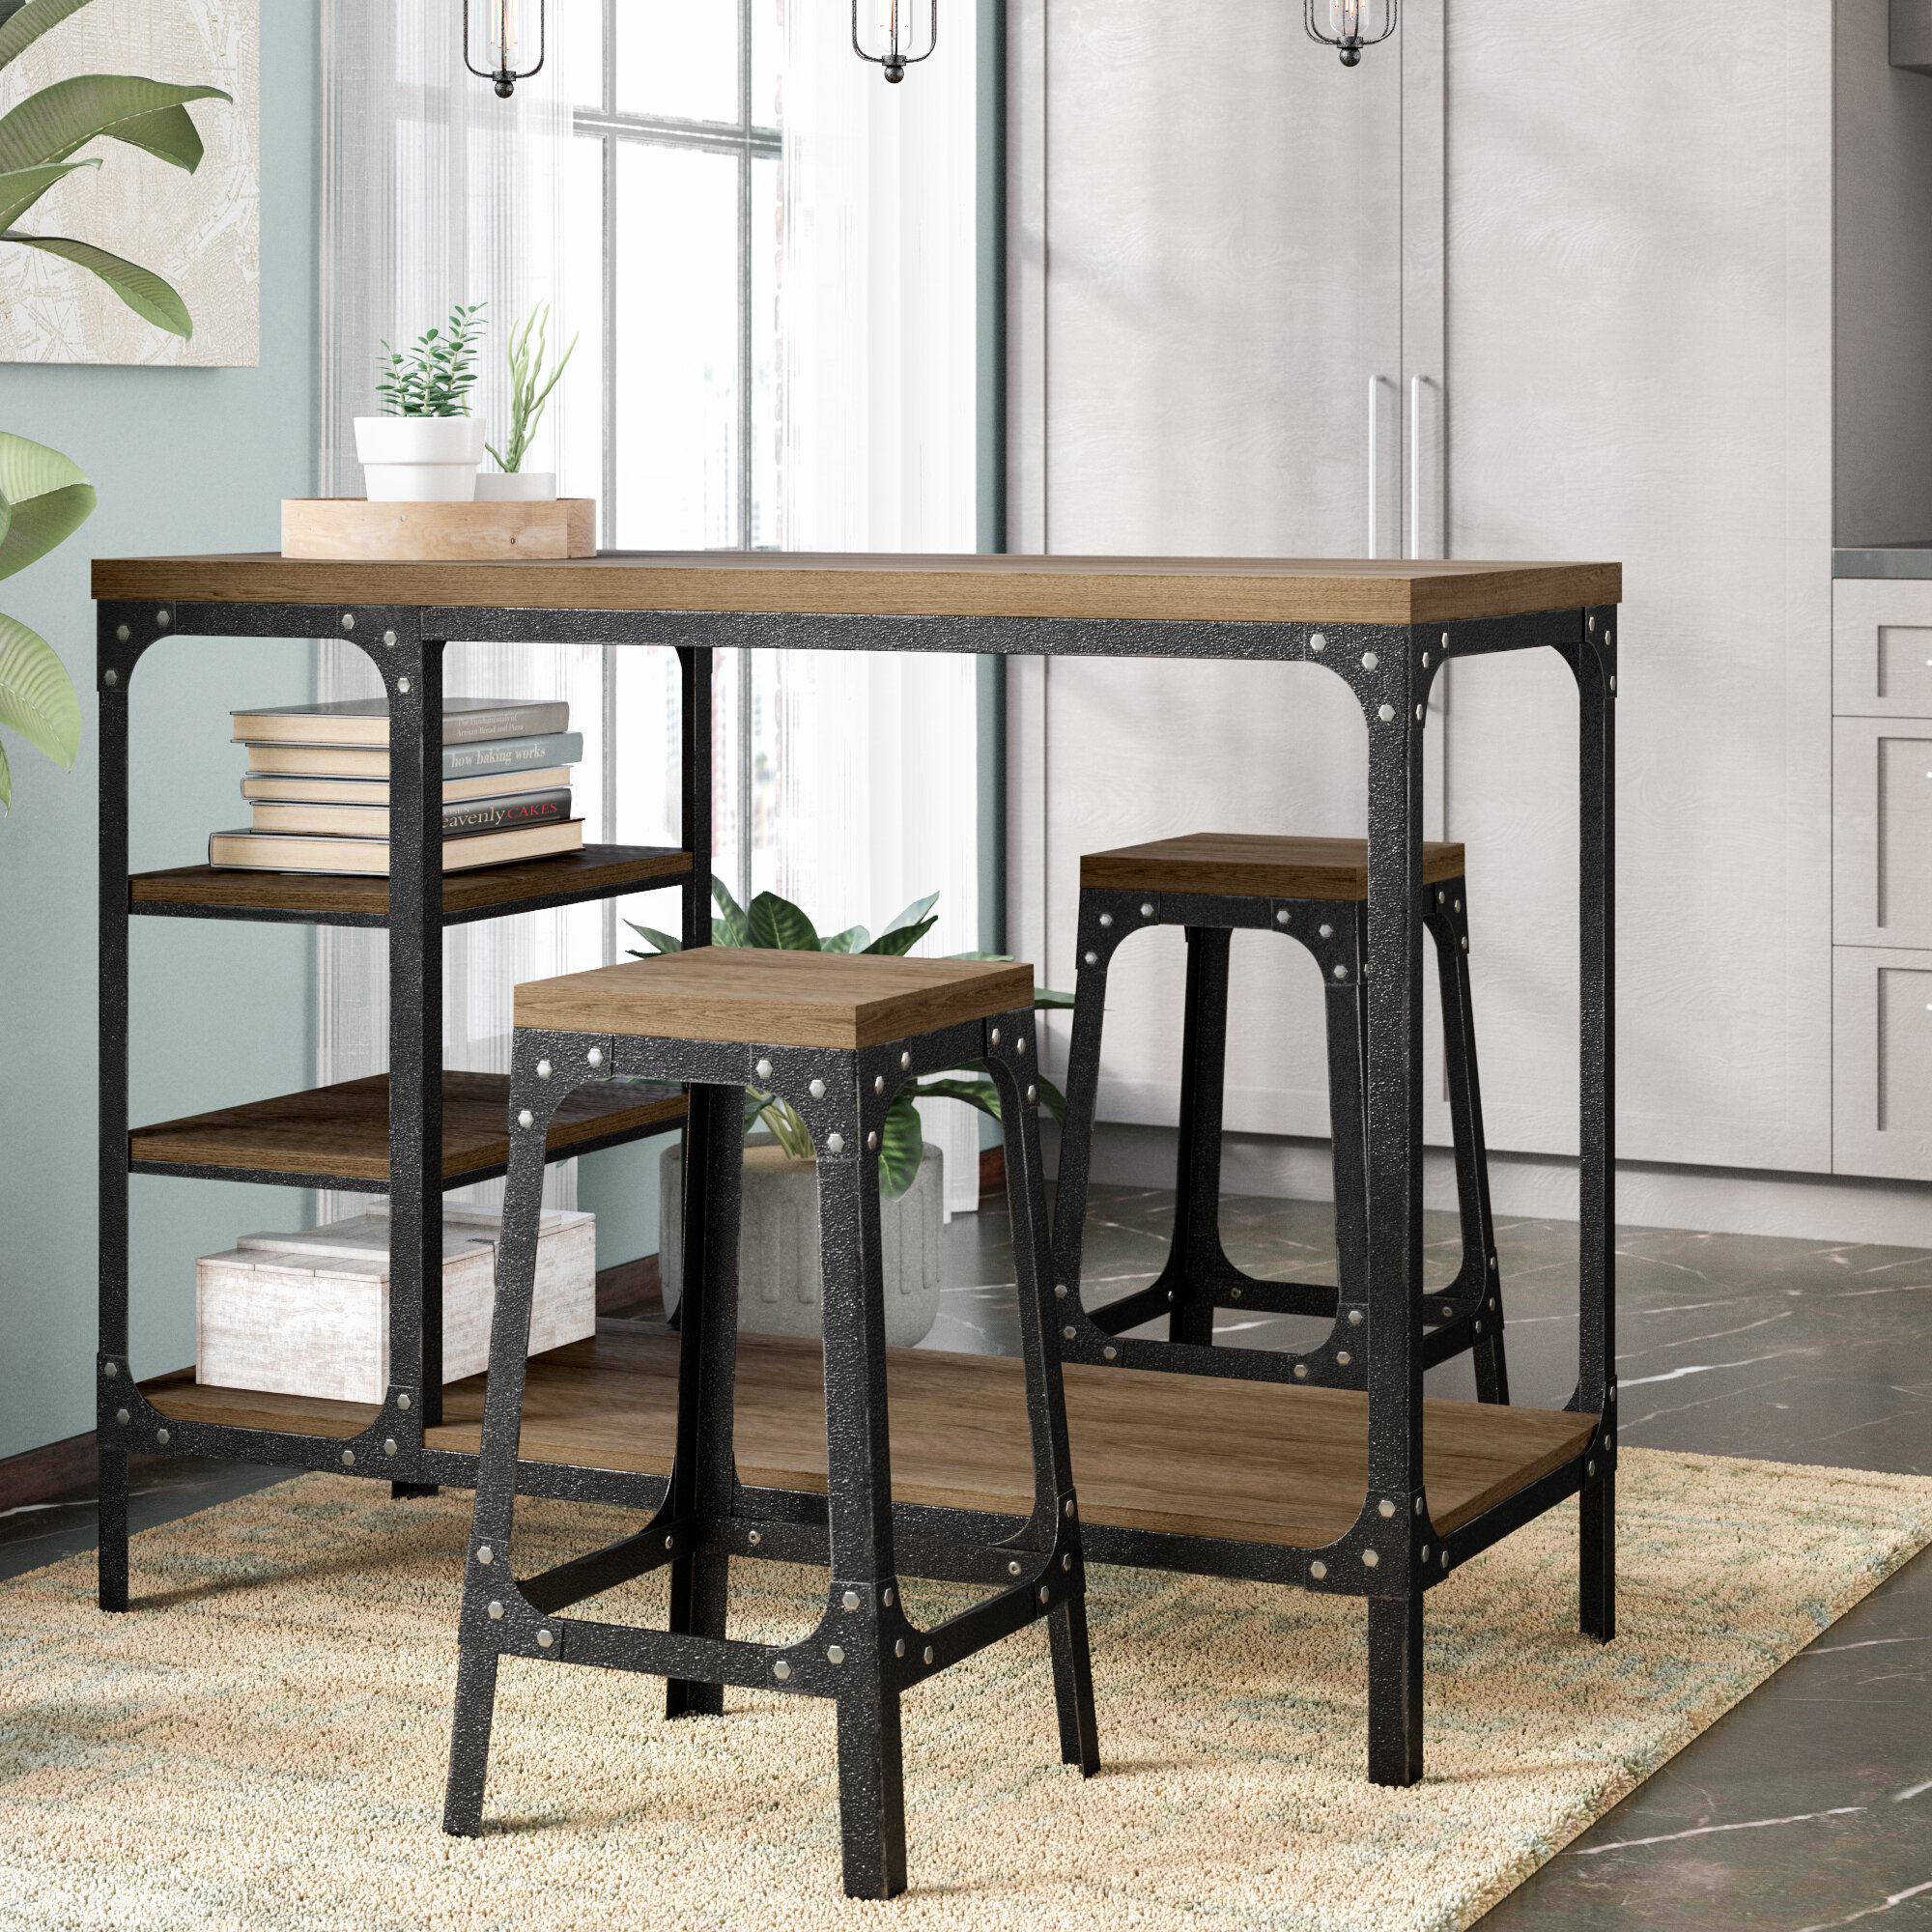 Williston Forge Terence 3 Piece Counter Height Dining Set U0026 Reviews |  Wayfair